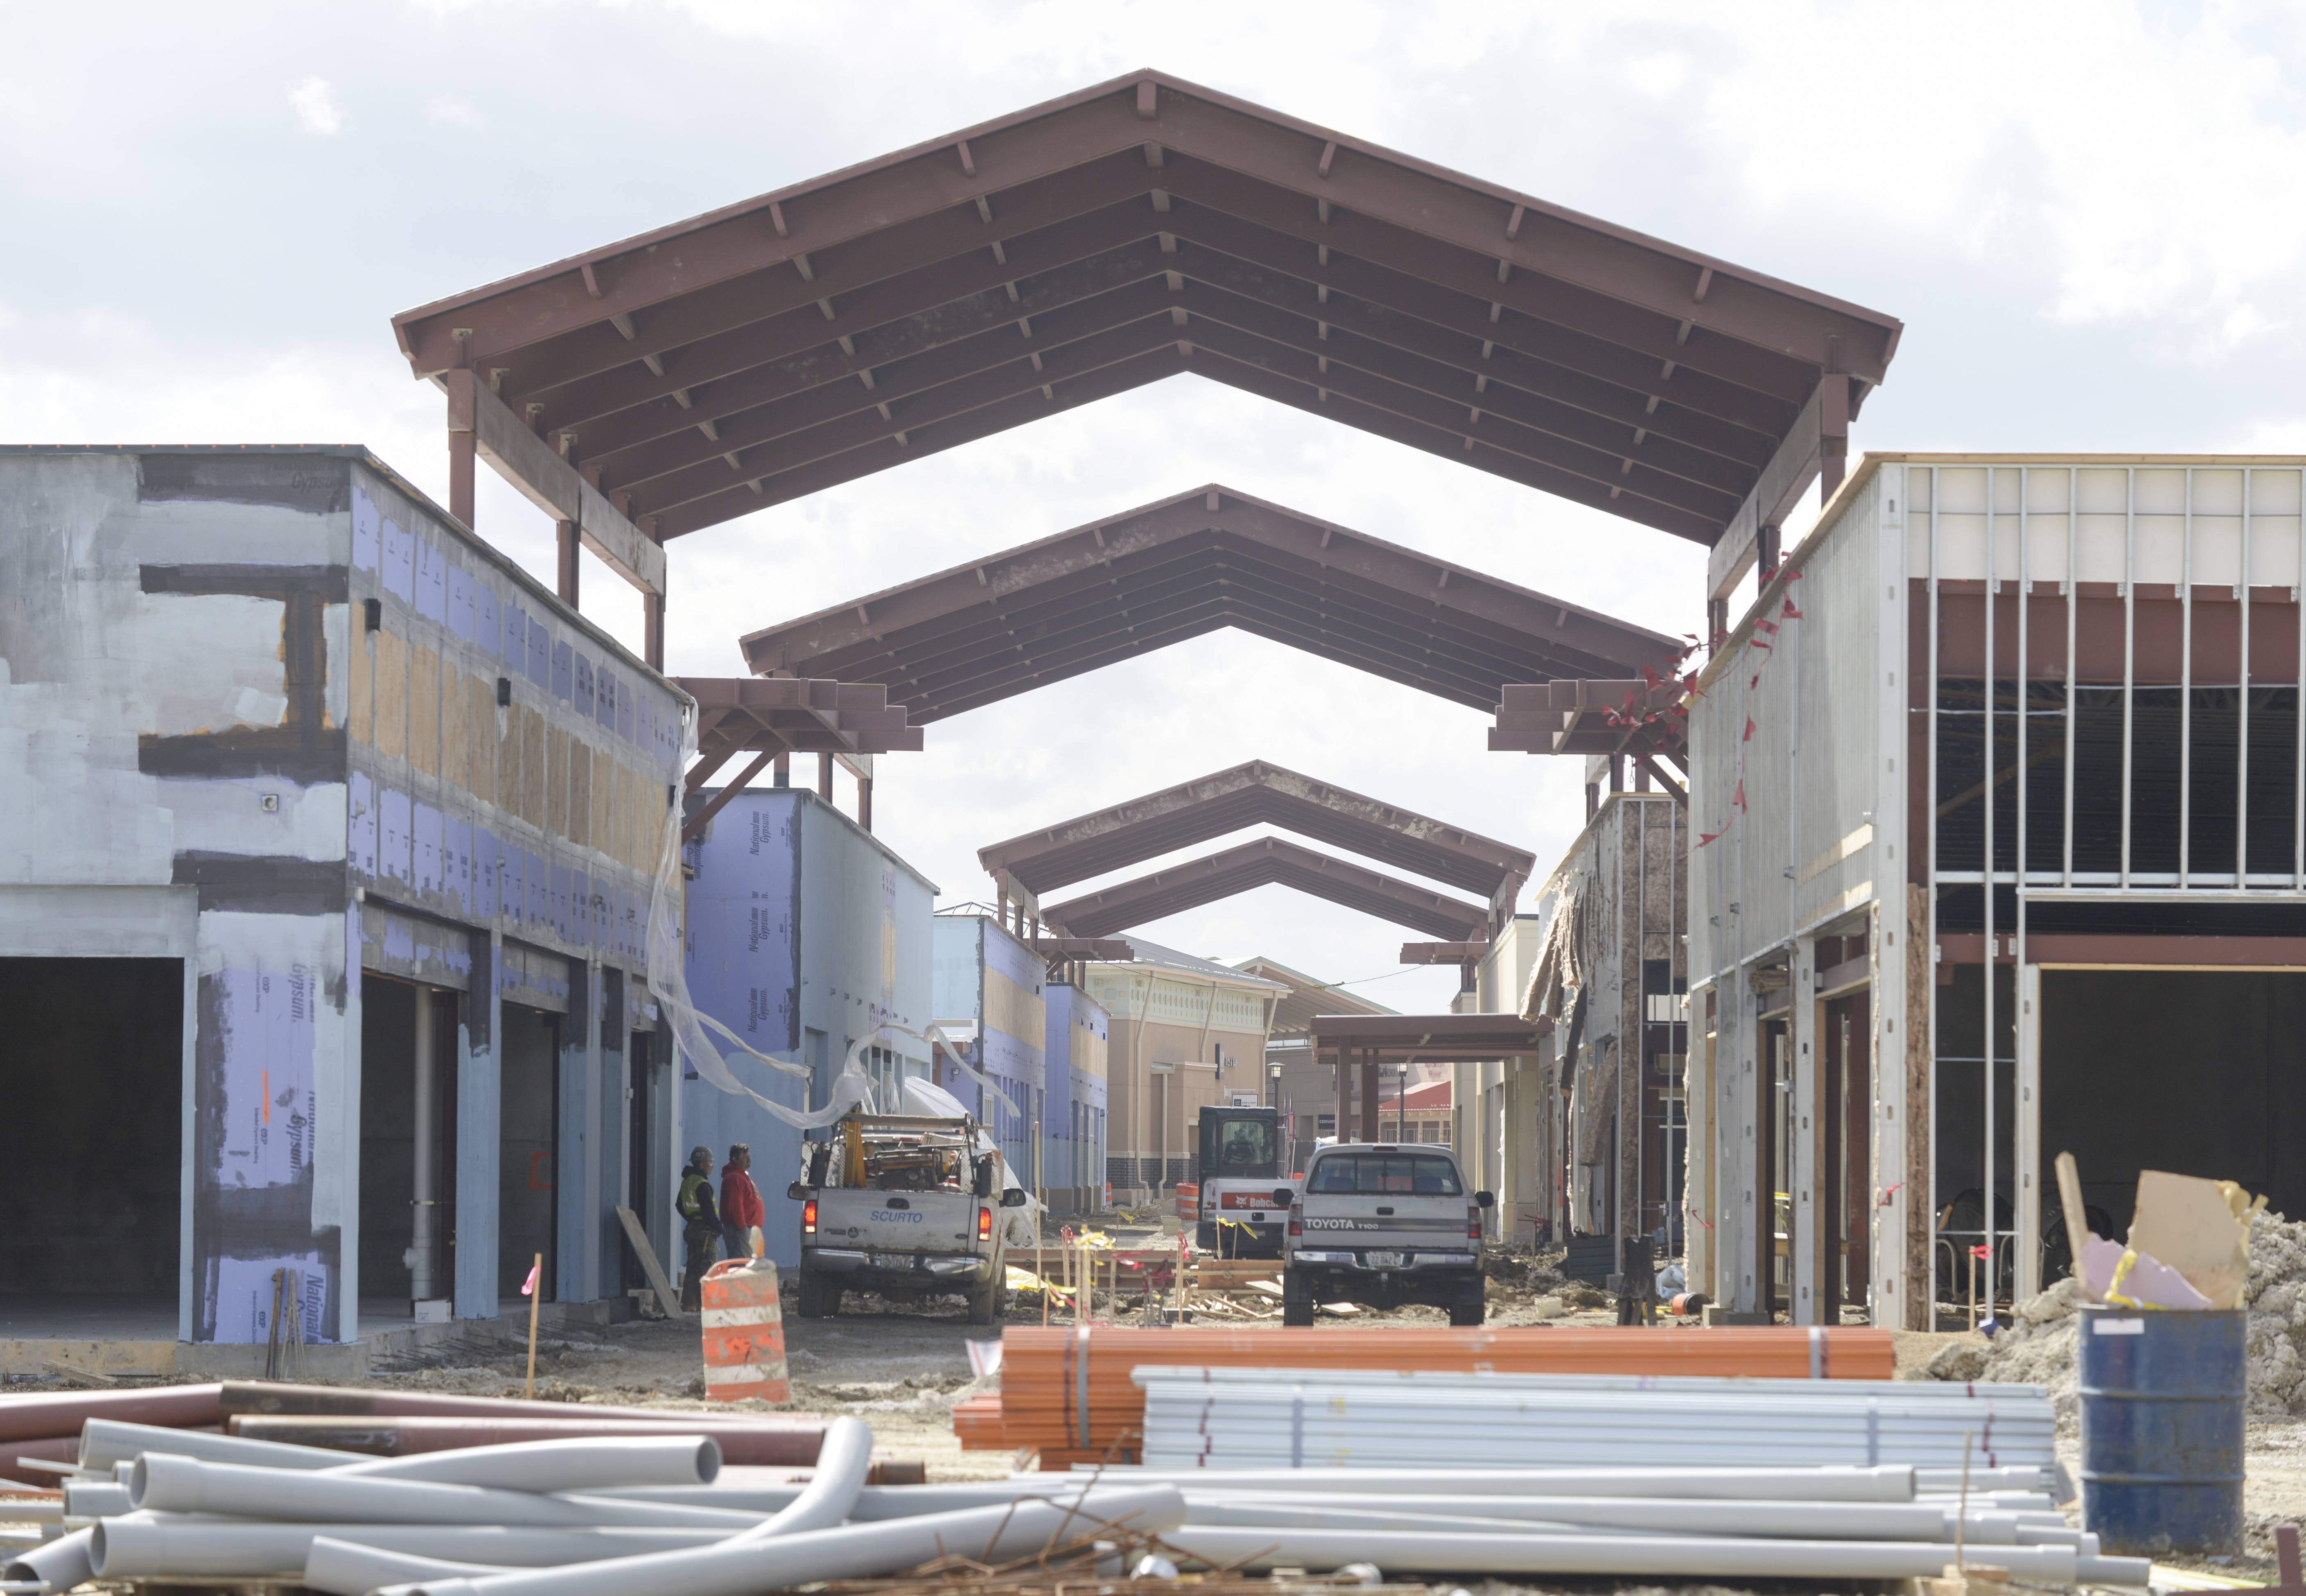 A new partially covered walkway is being constructed at Chicago Premium Outlets in Aurora as part of an expansion project that includes 50 new stores. Twenty of those stores were announced Tuesday.